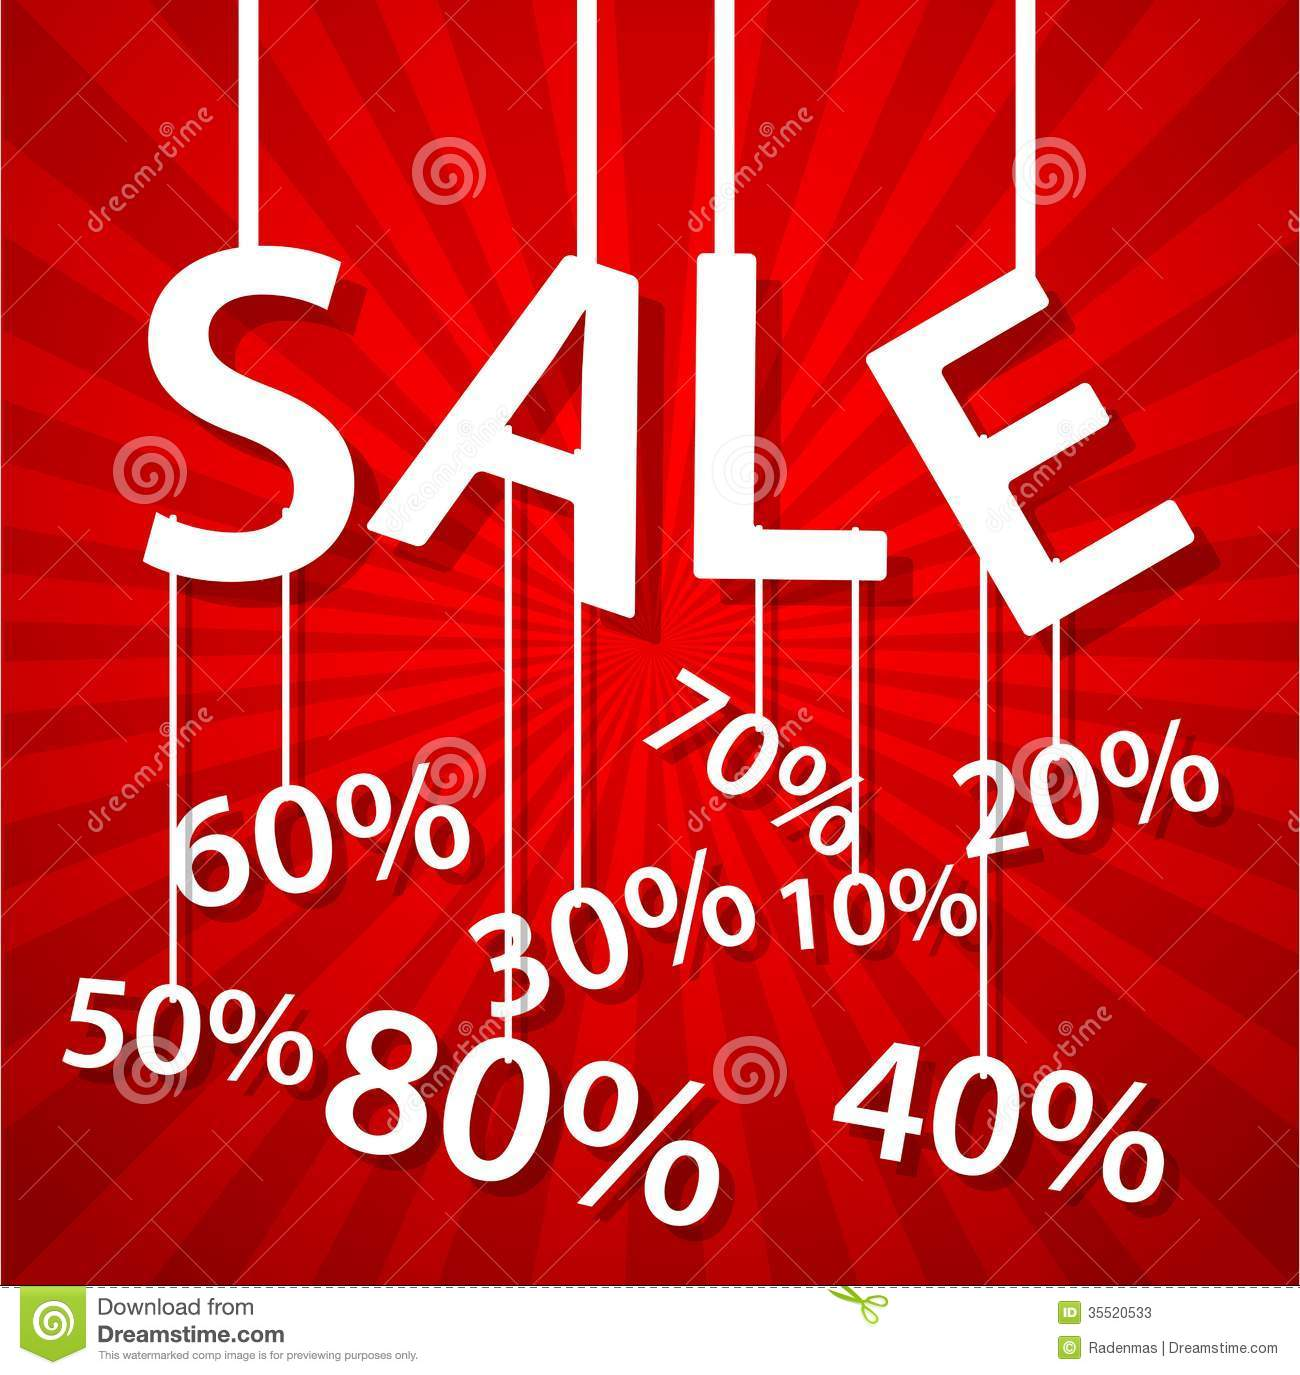 Sale Poster With Percent Discount Stock Photos - Image: 35520533: dreamstime.com/stock-photos-sale-poster-percent-discount...